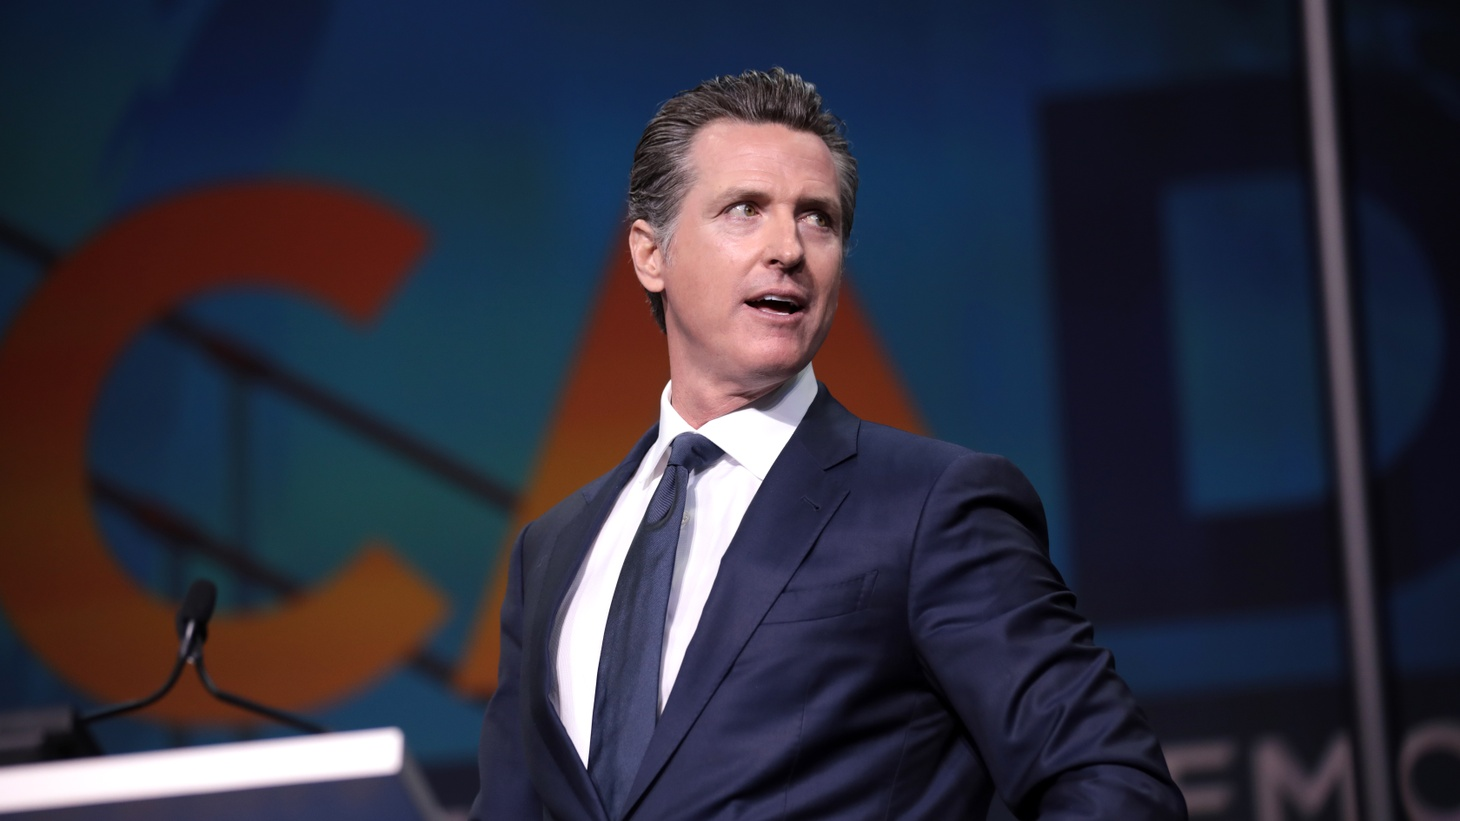 Governor Gavin Newsom speaking at the 2019 California Democratic Party State Convention at the George R. Moscone Convention Center in San Francisco, California. Newsom is now facing a recall effort that requires 1.5 million signatures by mid-March.